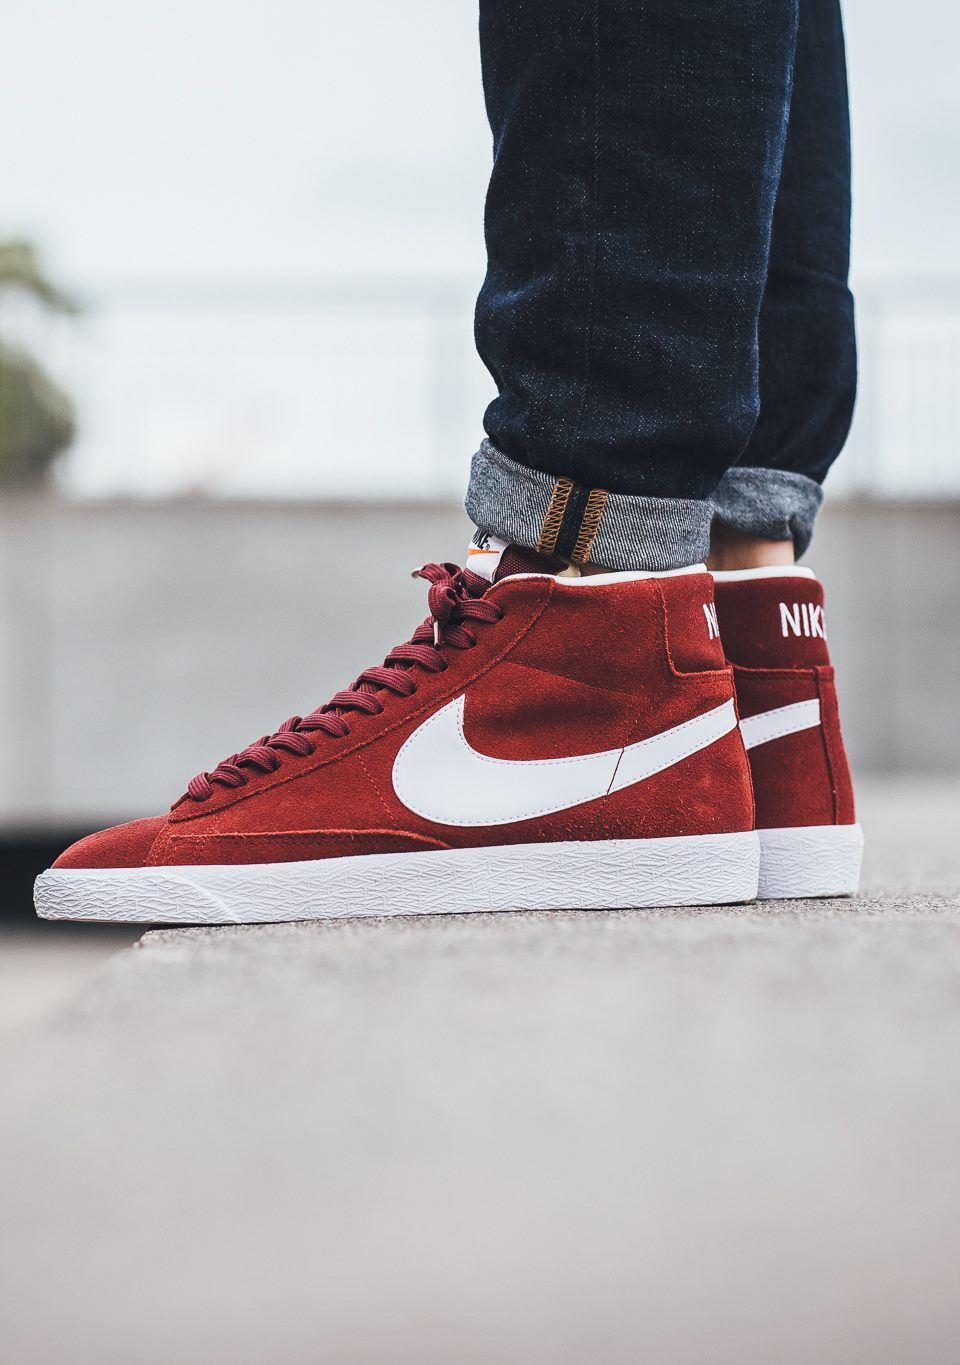 brand new 605ce 773d8 Nike Blazer Mid Premium Team Red  sneakernews  Sneakers  StreetStyle  Kicks